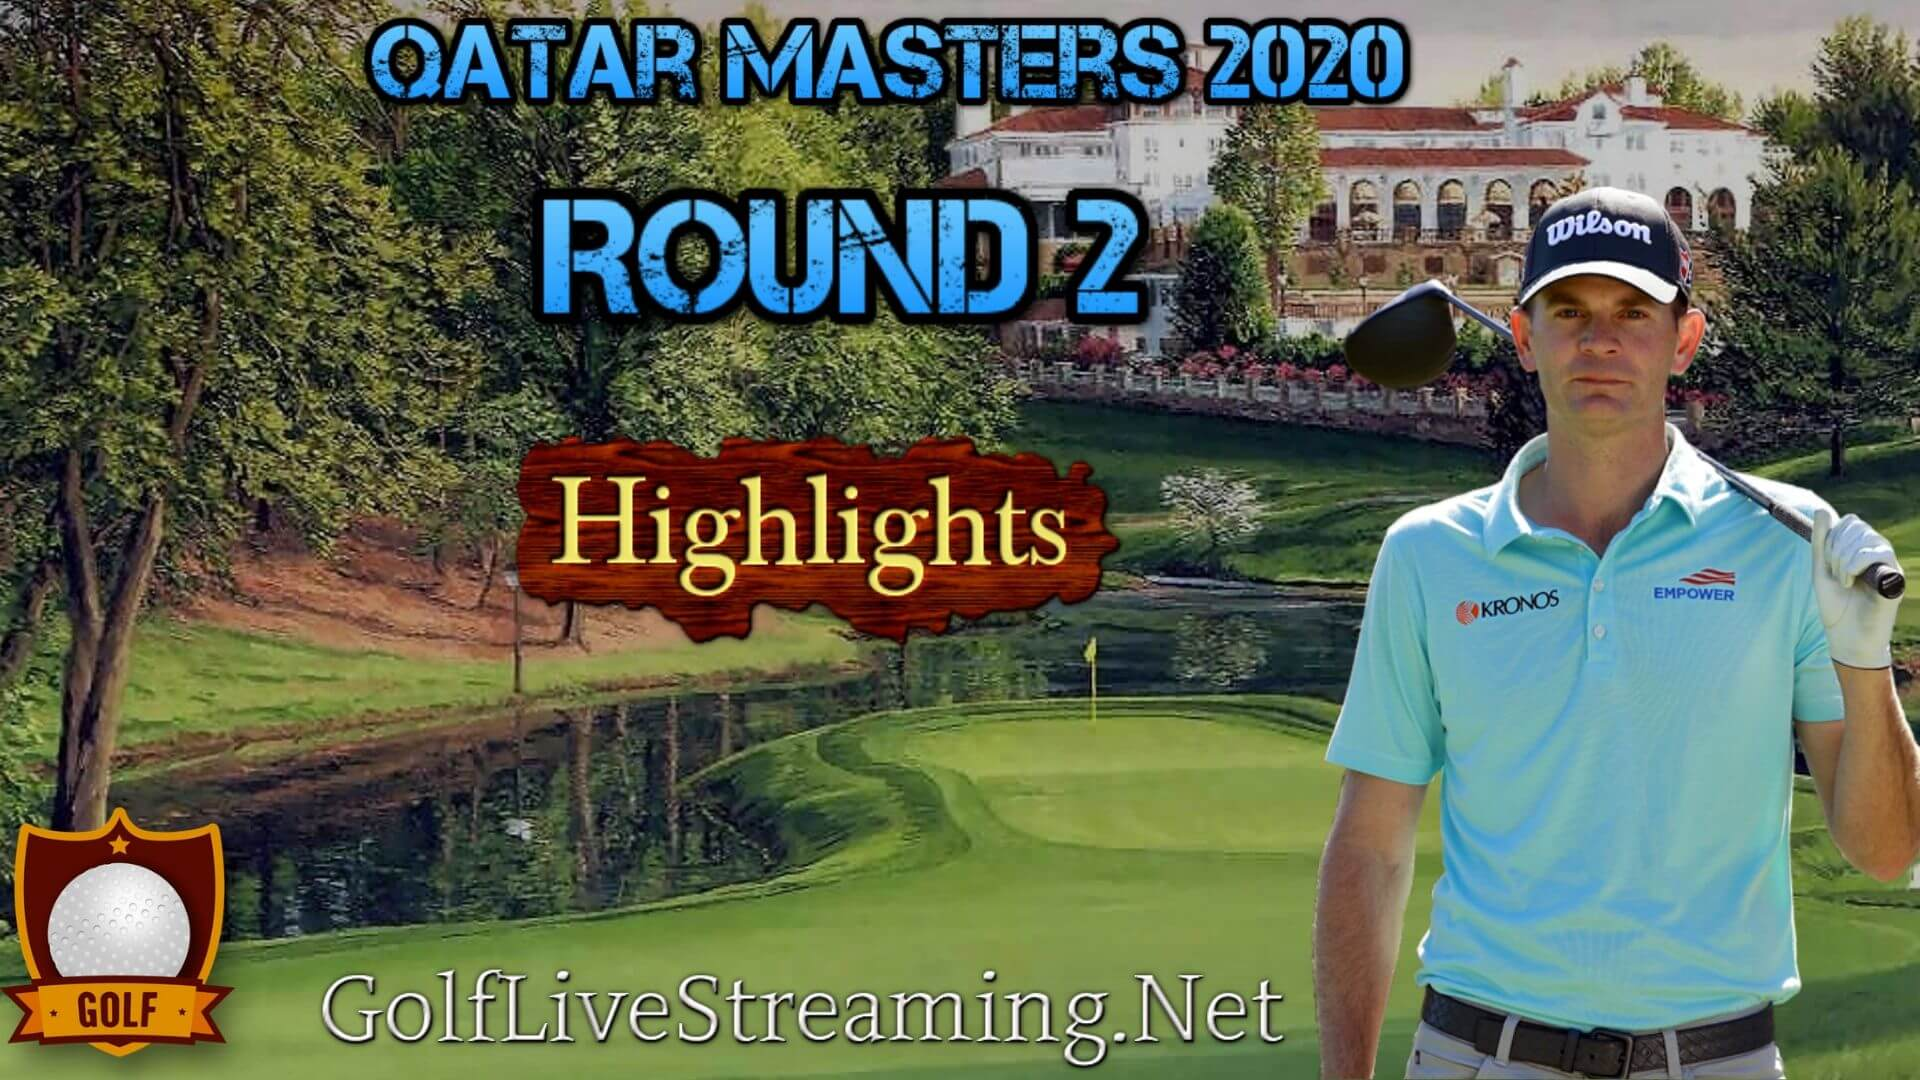 Qatar Masters Rd 2 Highlights 2020